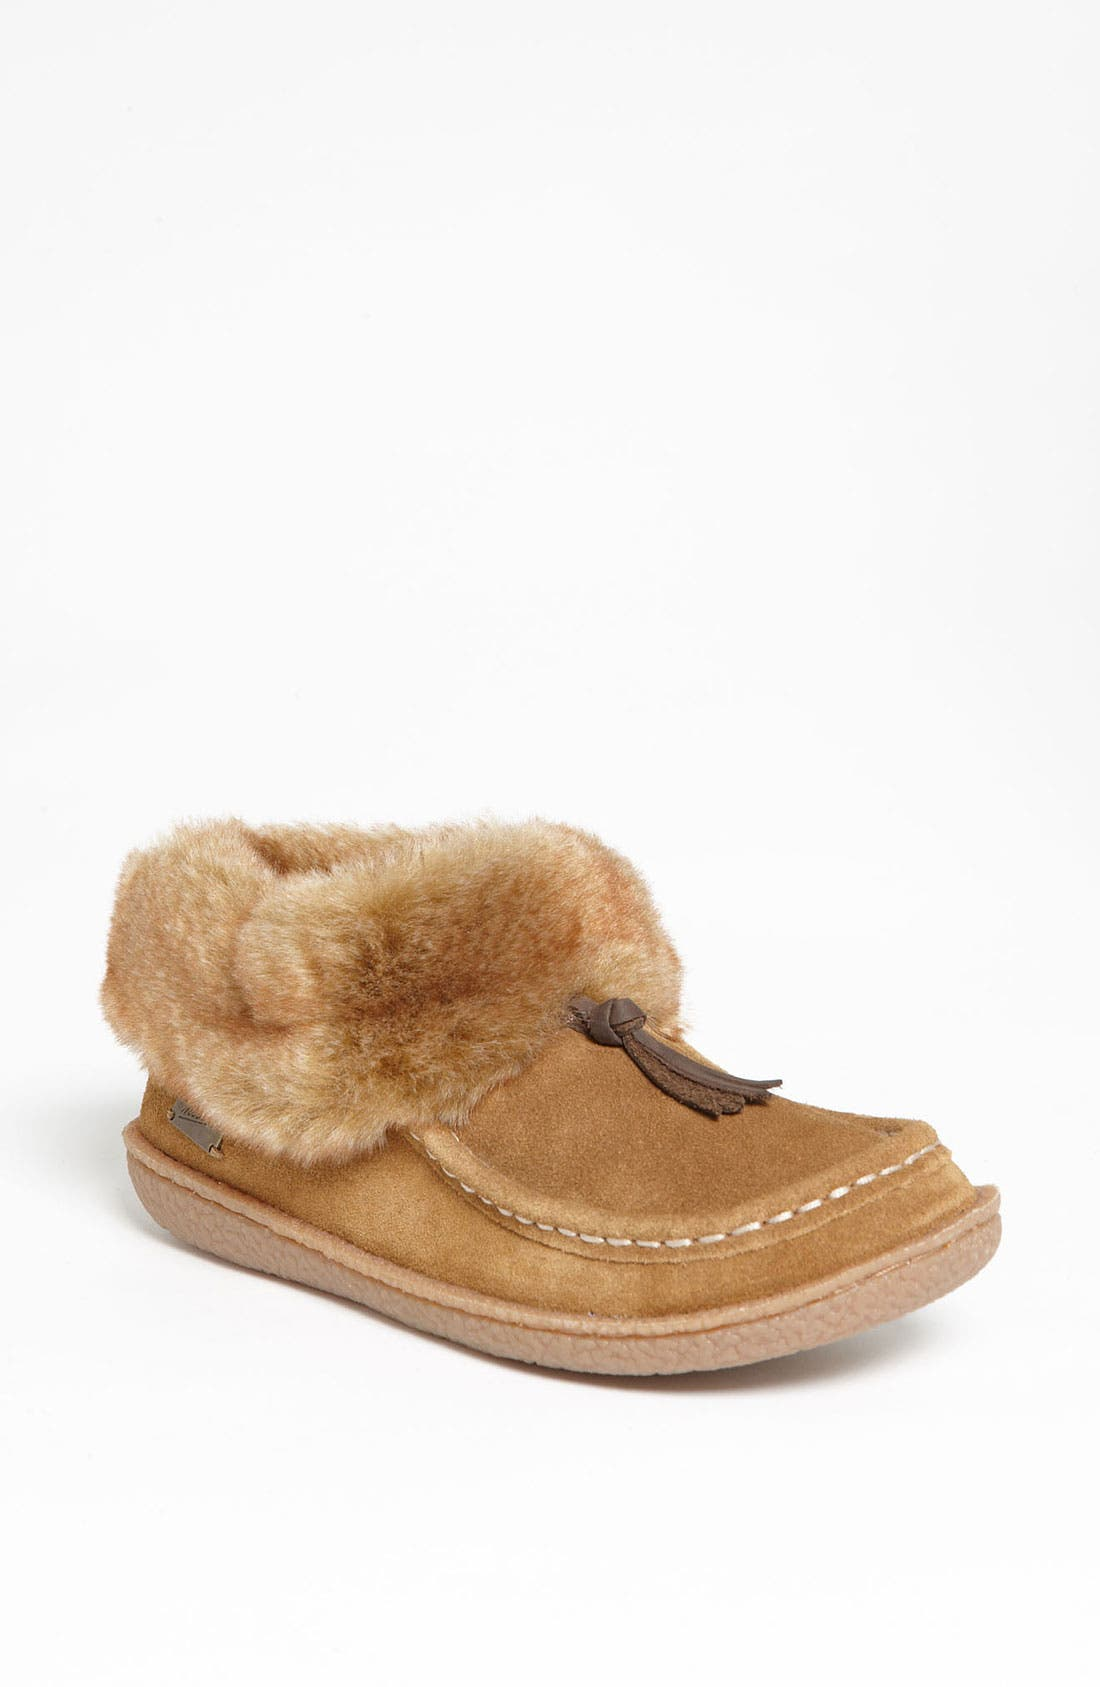 Main Image - Woolrich 'Willowbrook' Bootie Slipper (Women)